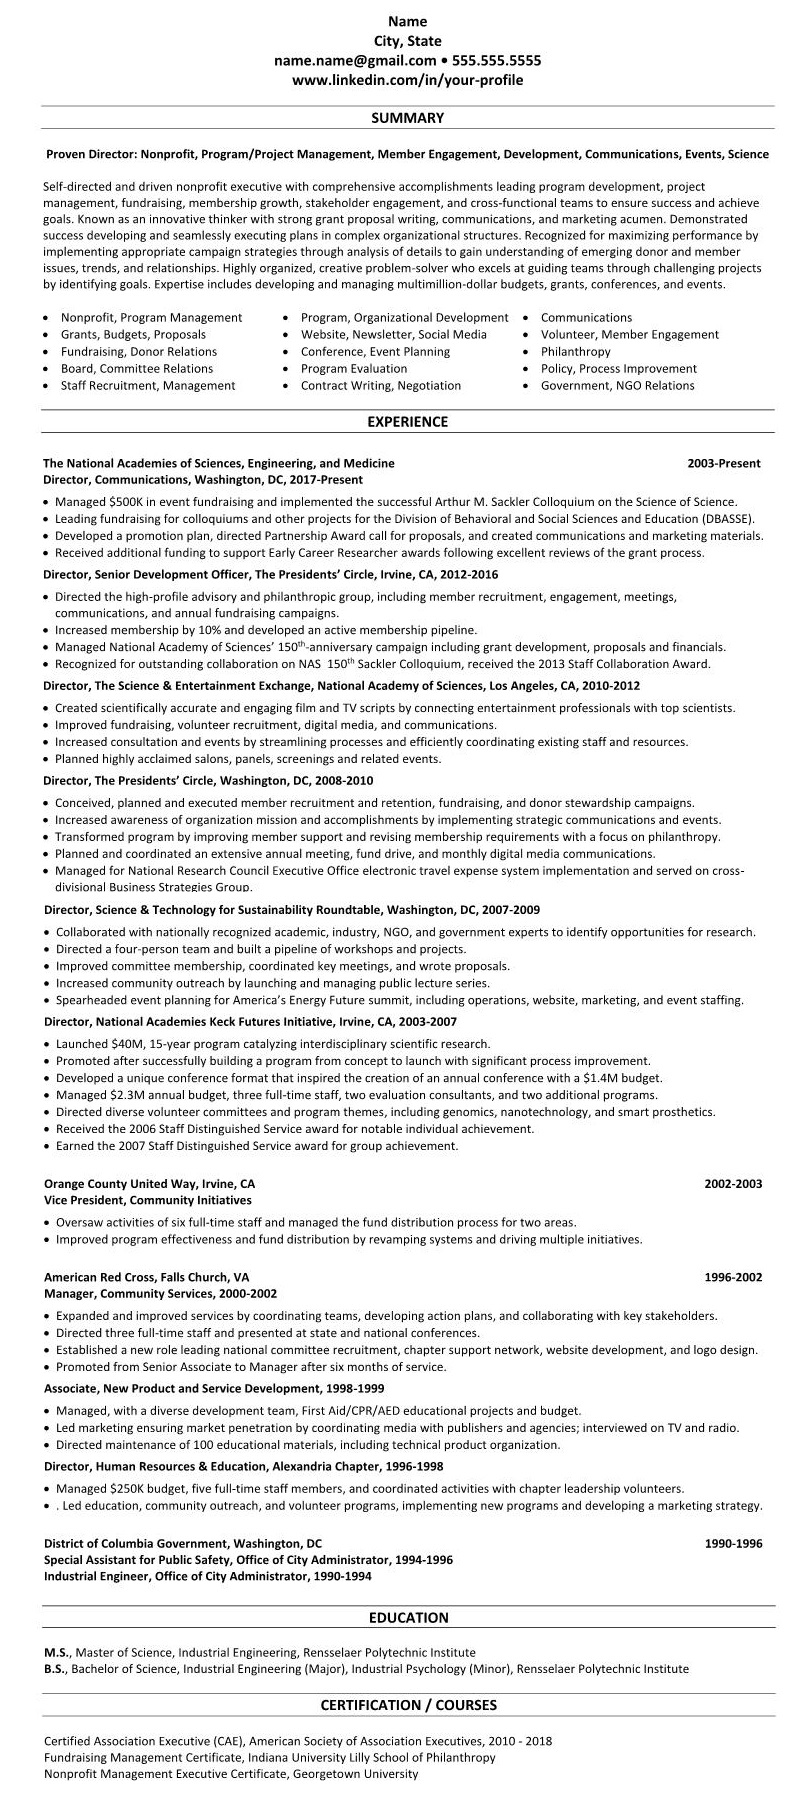 general resume format for freshers experienced examples security clearance on number Resume Georgetown Resume Template